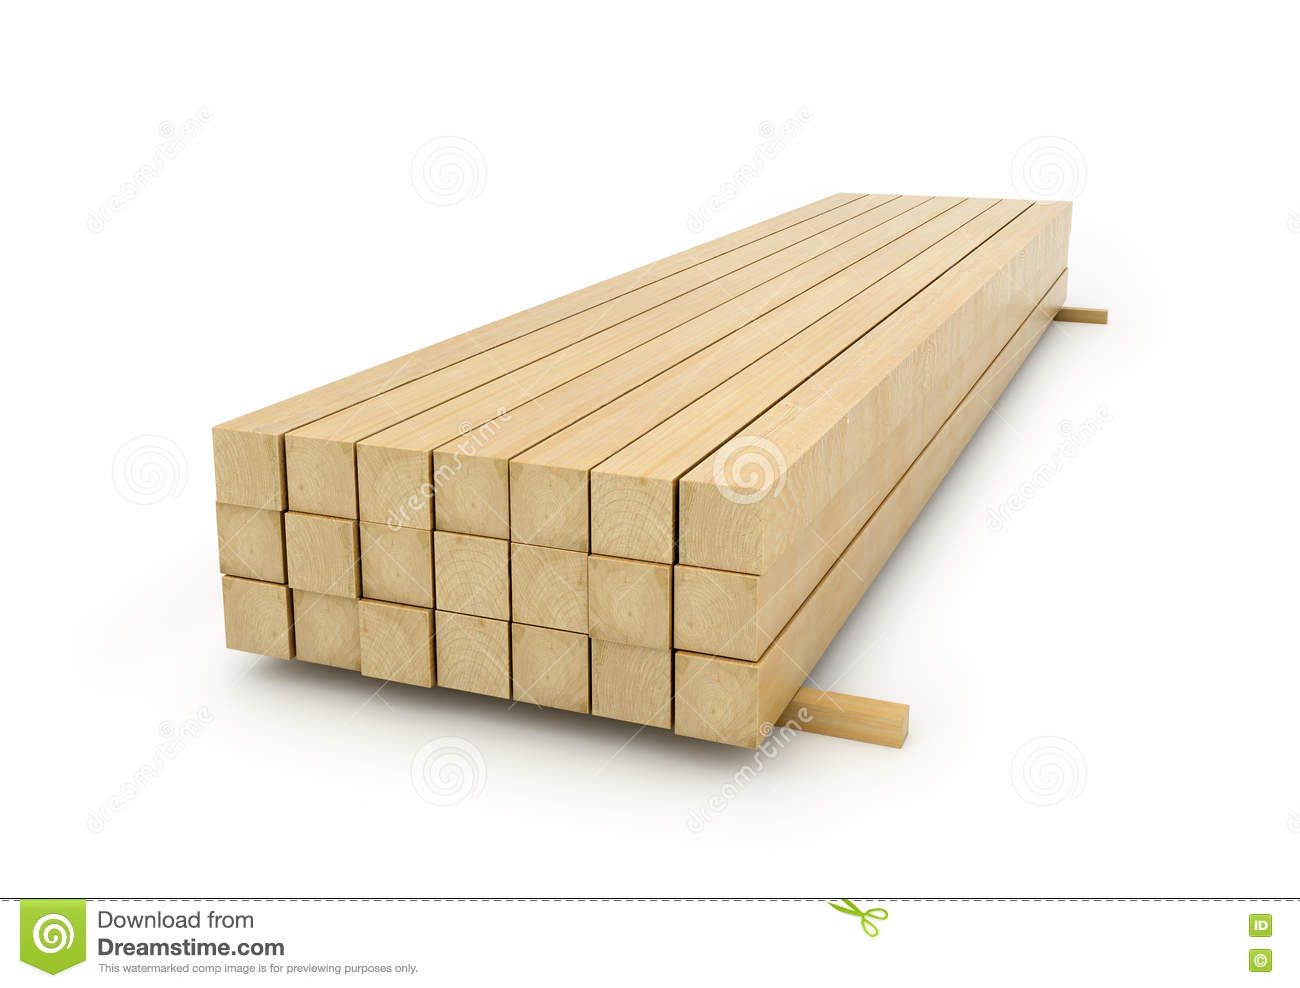 Wooden beams for the building